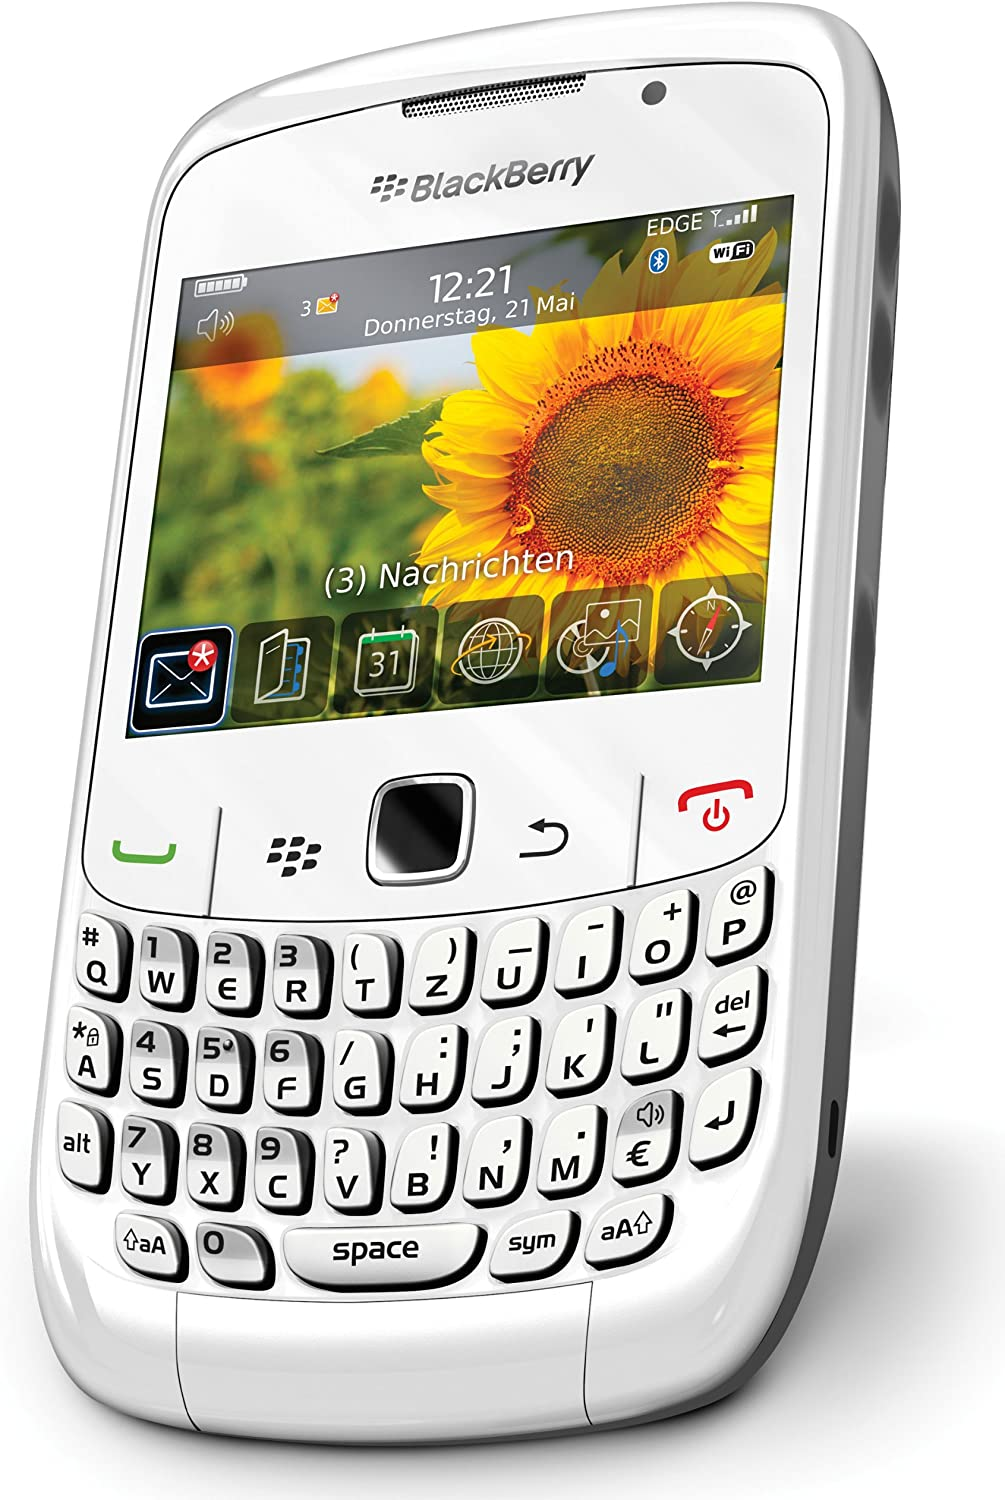 Blackberry Curve 8520 Smartphone Tastiera Qwertz Colore Bianco Importato Da Germania Amazon It Elettronica